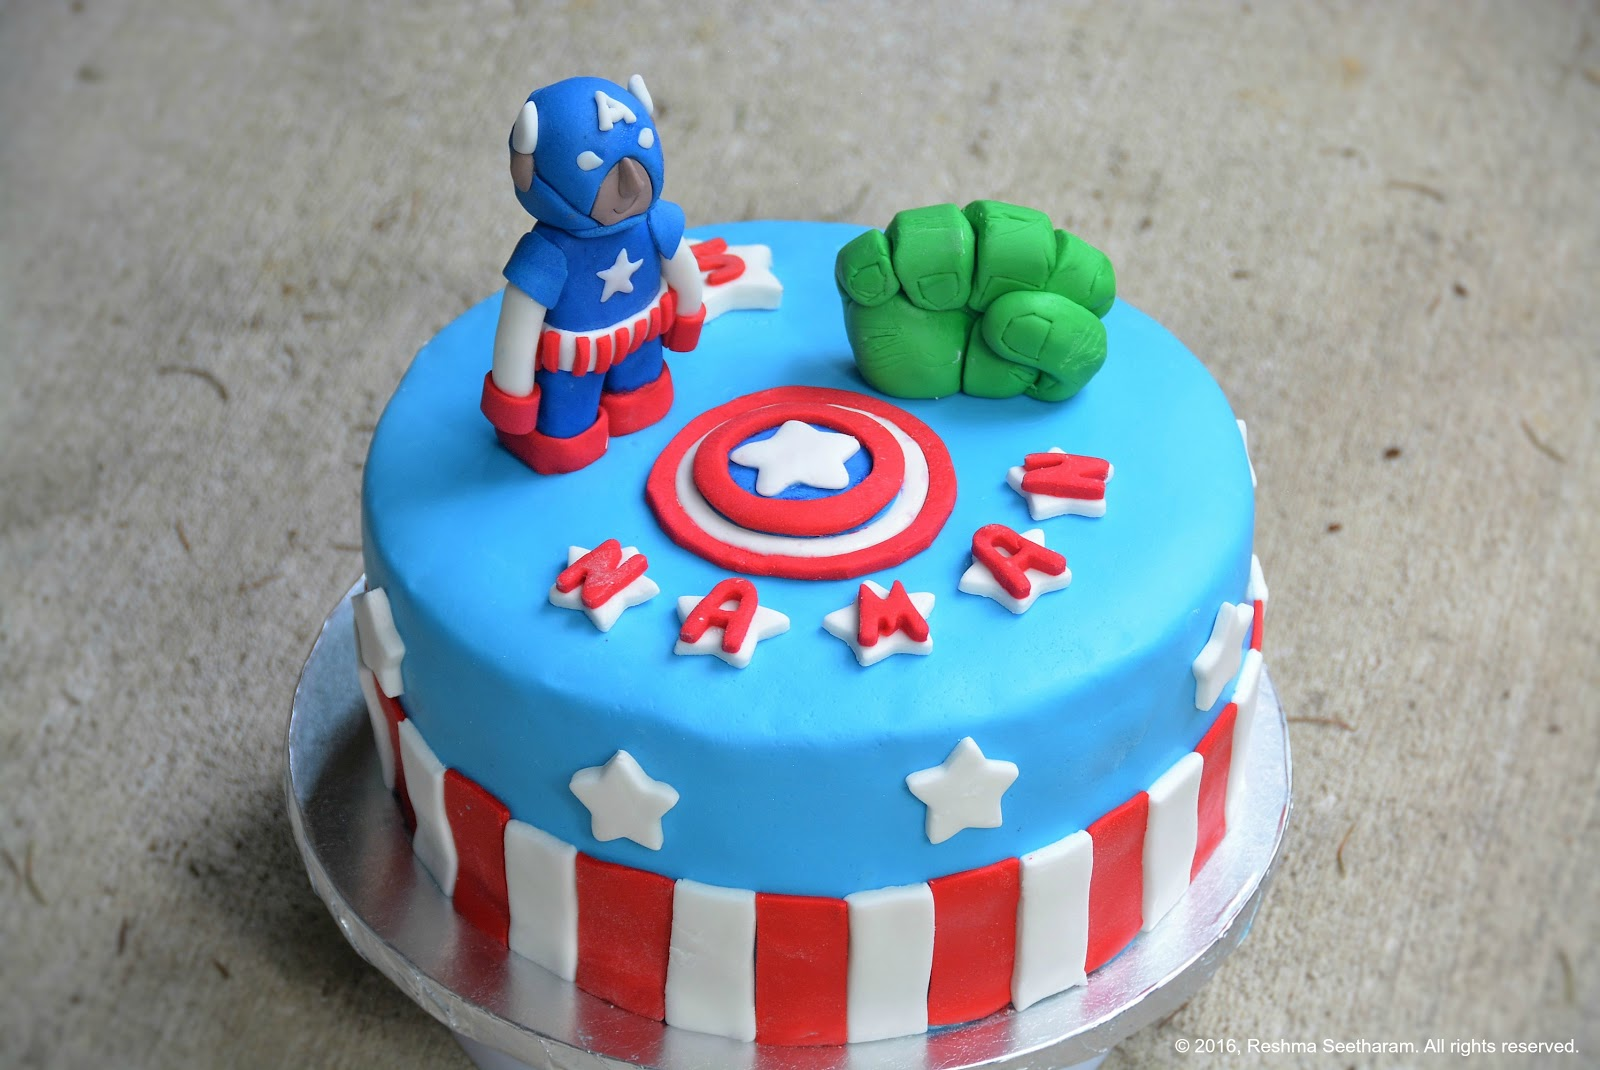 Birthday Cake Image With Name Reshma : My Foodarama by Reshma Seetharam: Avengers Captain America ...